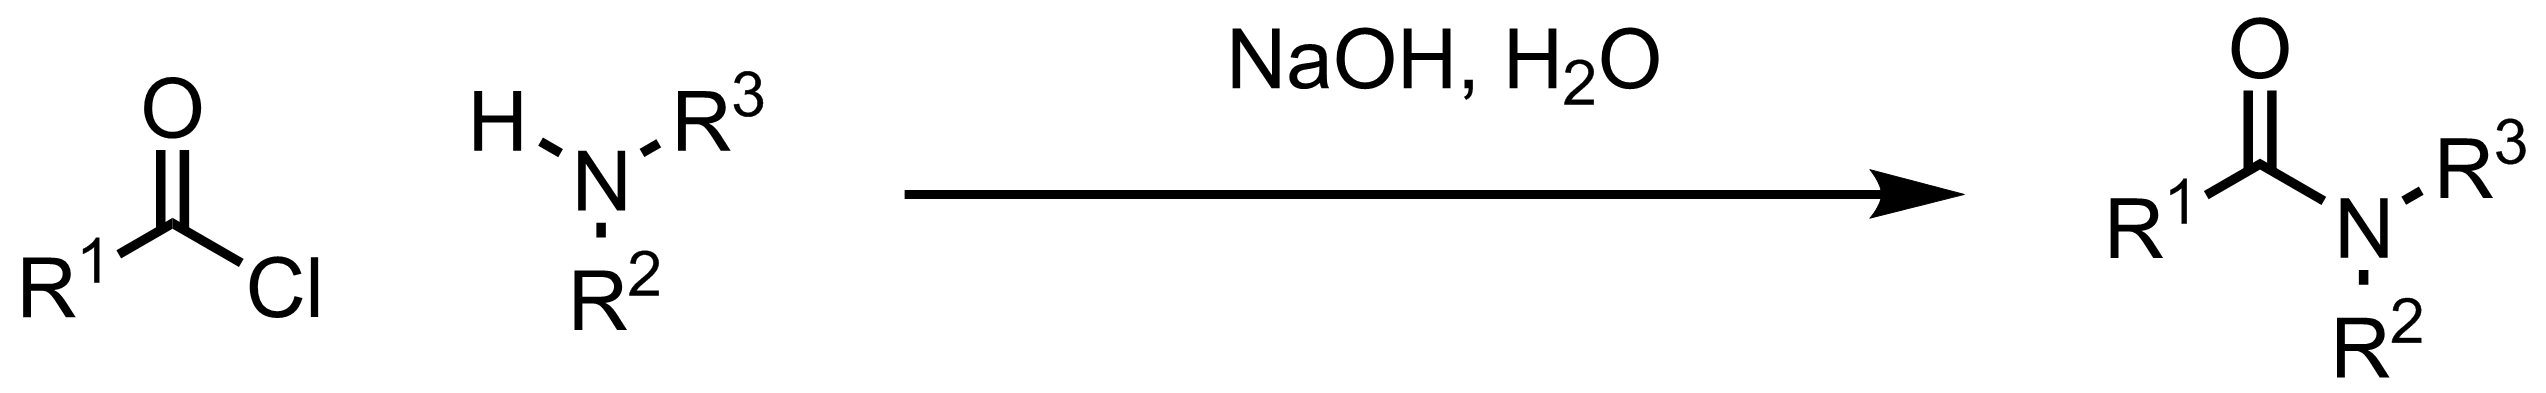 Schematic representation of the Schotten-Baumann Reaction.